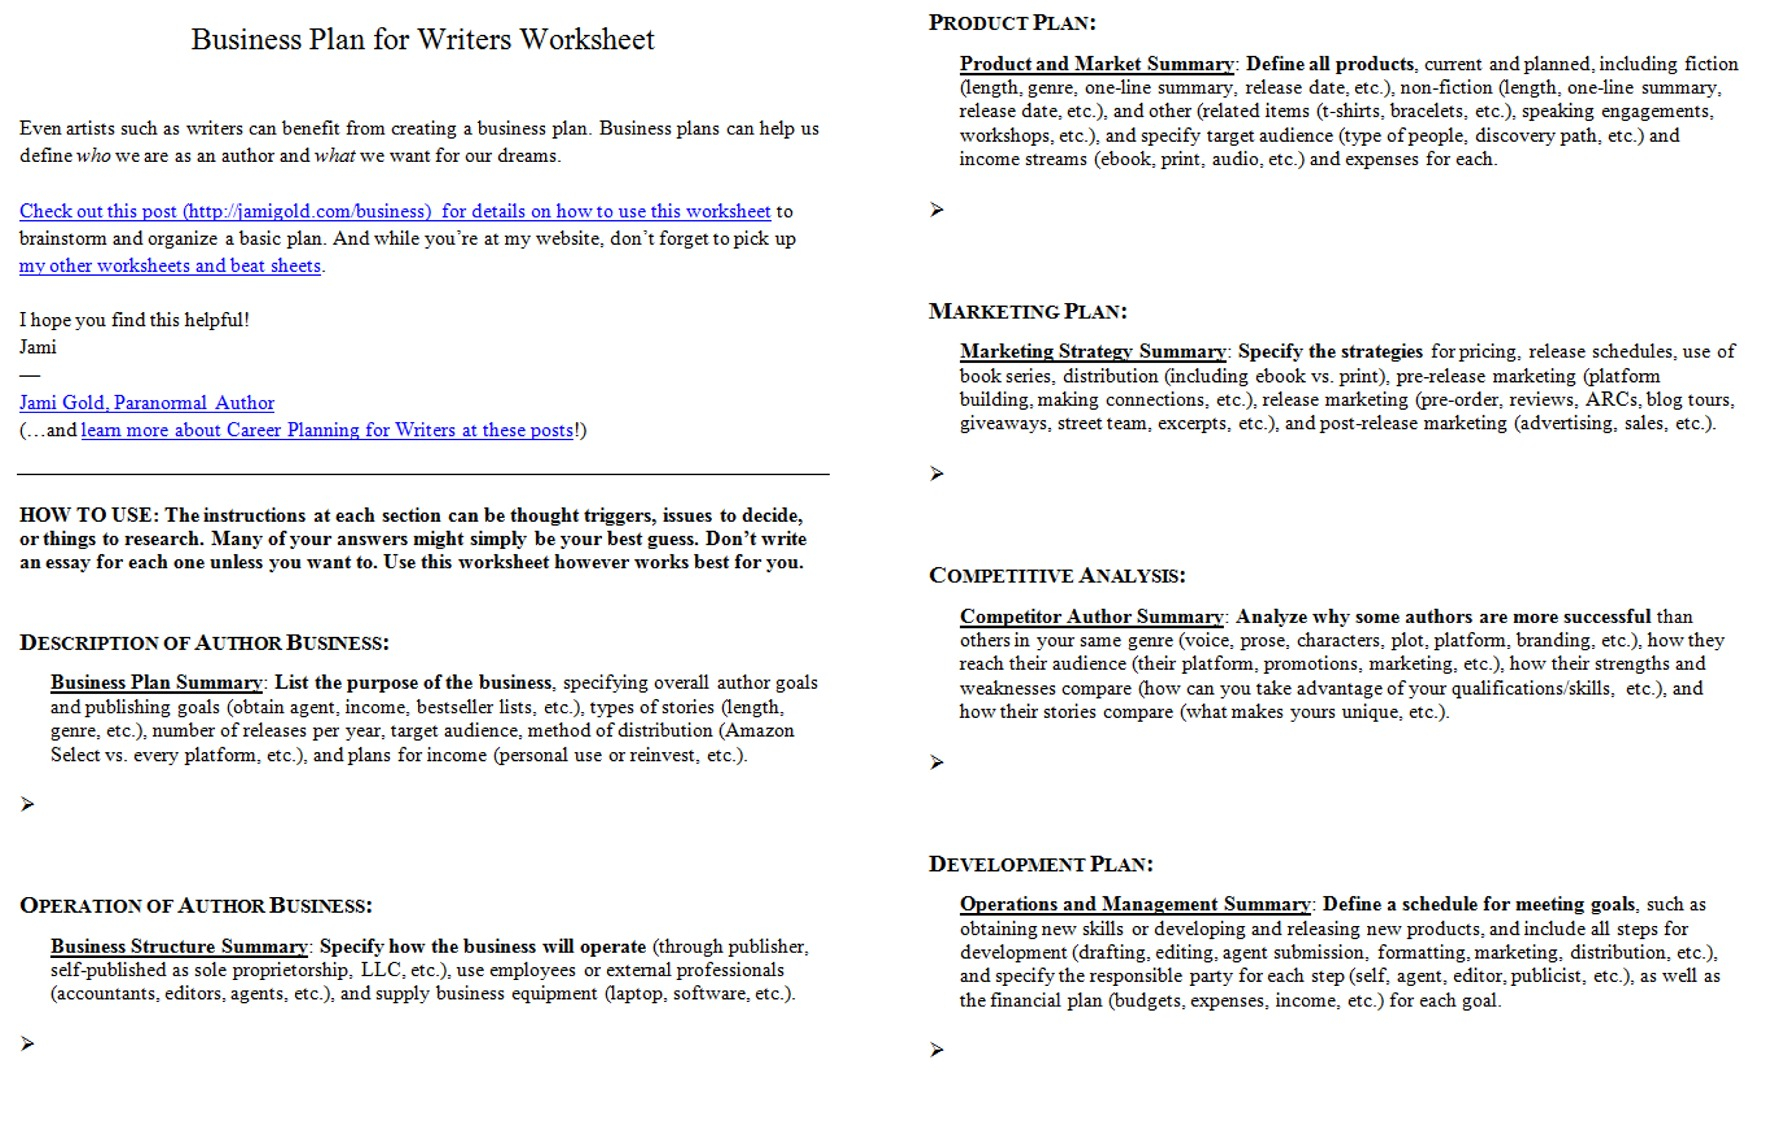 Weirdmailus  Prepossessing Worksheets For Writers  Jami Gold Paranormal Author With Outstanding Screen Shot Of Both Pages Of The Business Plan For Writers Worksheet With Beauteous Bridge To Terabithia Worksheets Free Also Year  Maths Worksheets Printable In Addition Ou Sound Worksheet And Subtracting Money Worksheet As Well As Addition Basic Facts Worksheets Additionally Worksheets For Apostrophes From Jamigoldcom With Weirdmailus  Outstanding Worksheets For Writers  Jami Gold Paranormal Author With Beauteous Screen Shot Of Both Pages Of The Business Plan For Writers Worksheet And Prepossessing Bridge To Terabithia Worksheets Free Also Year  Maths Worksheets Printable In Addition Ou Sound Worksheet From Jamigoldcom